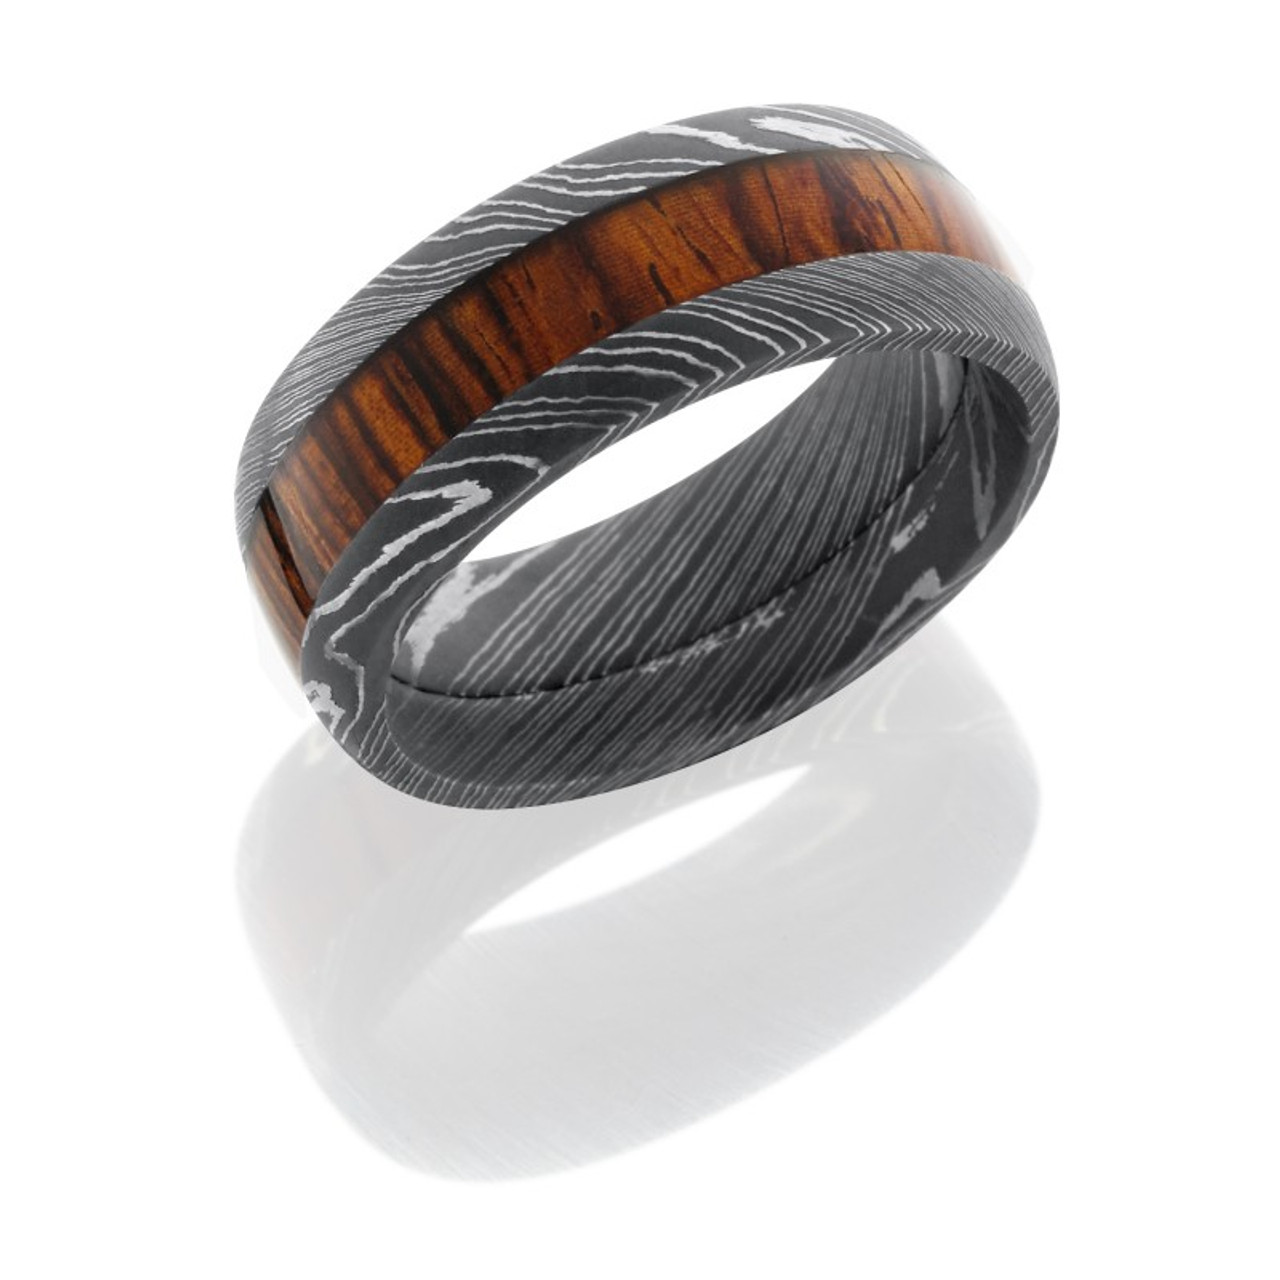 Damascus Steel With Mexican Cocobollo Wood Inlay Ring